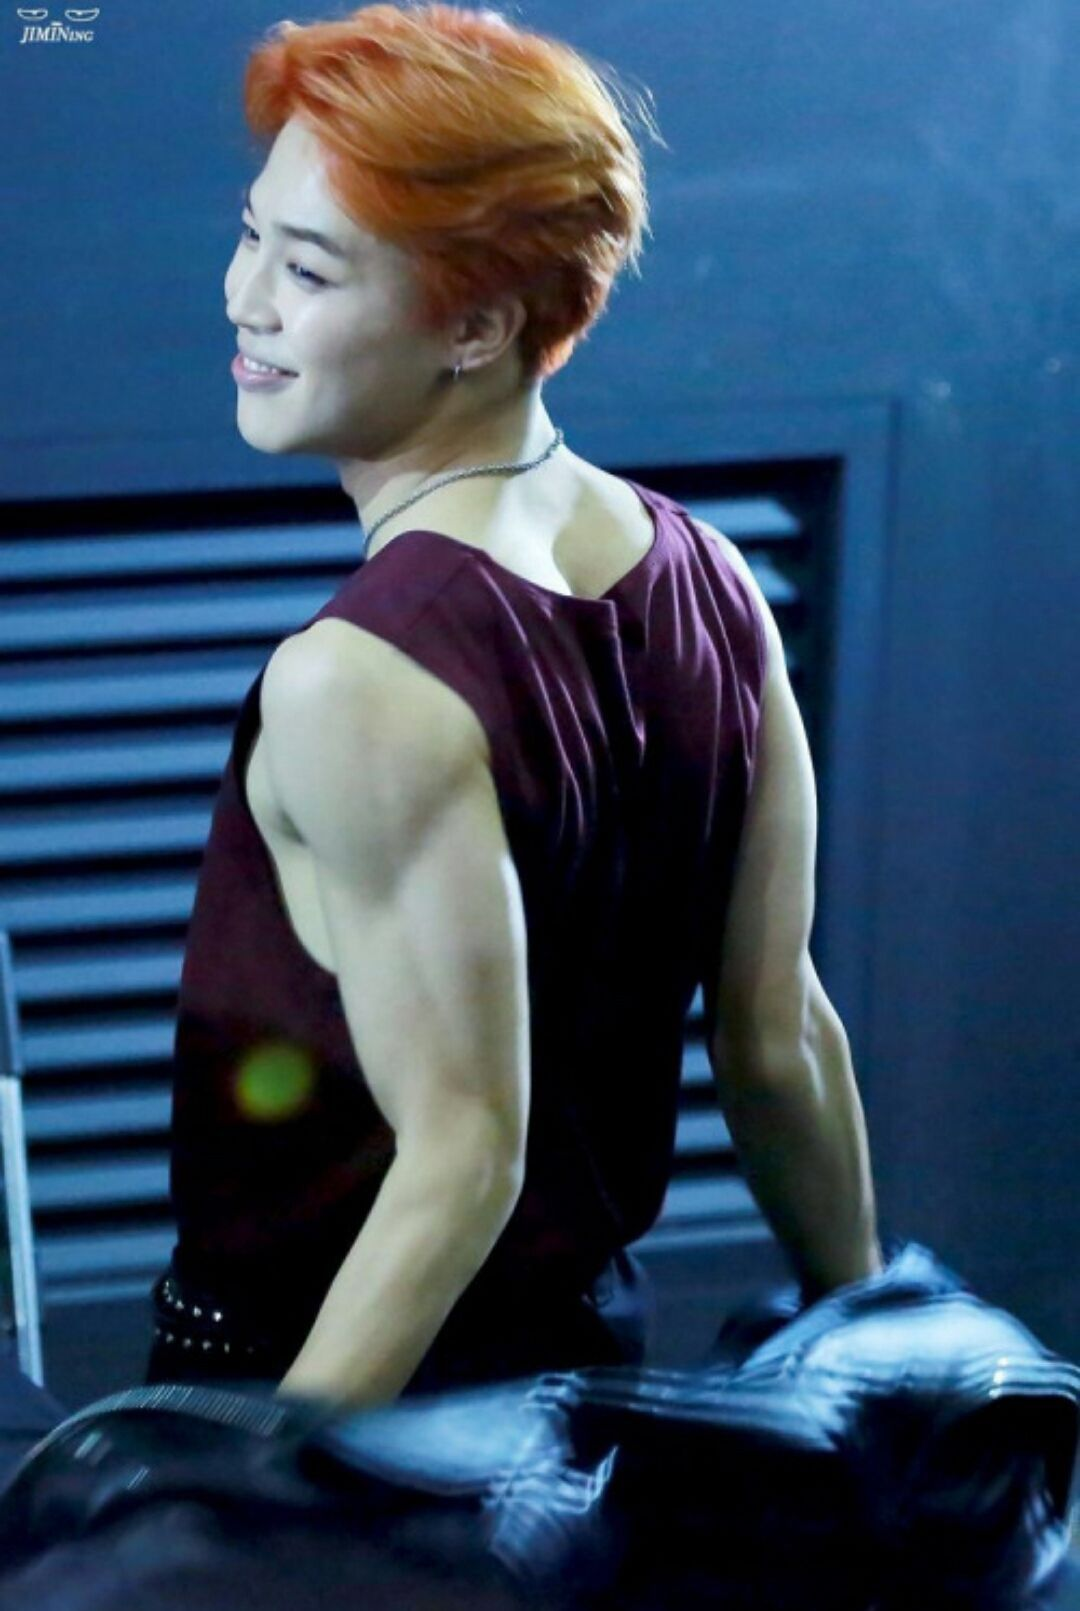 Blood Sweat And Tears Jimin Bts Park Ji Min Mutter Starb